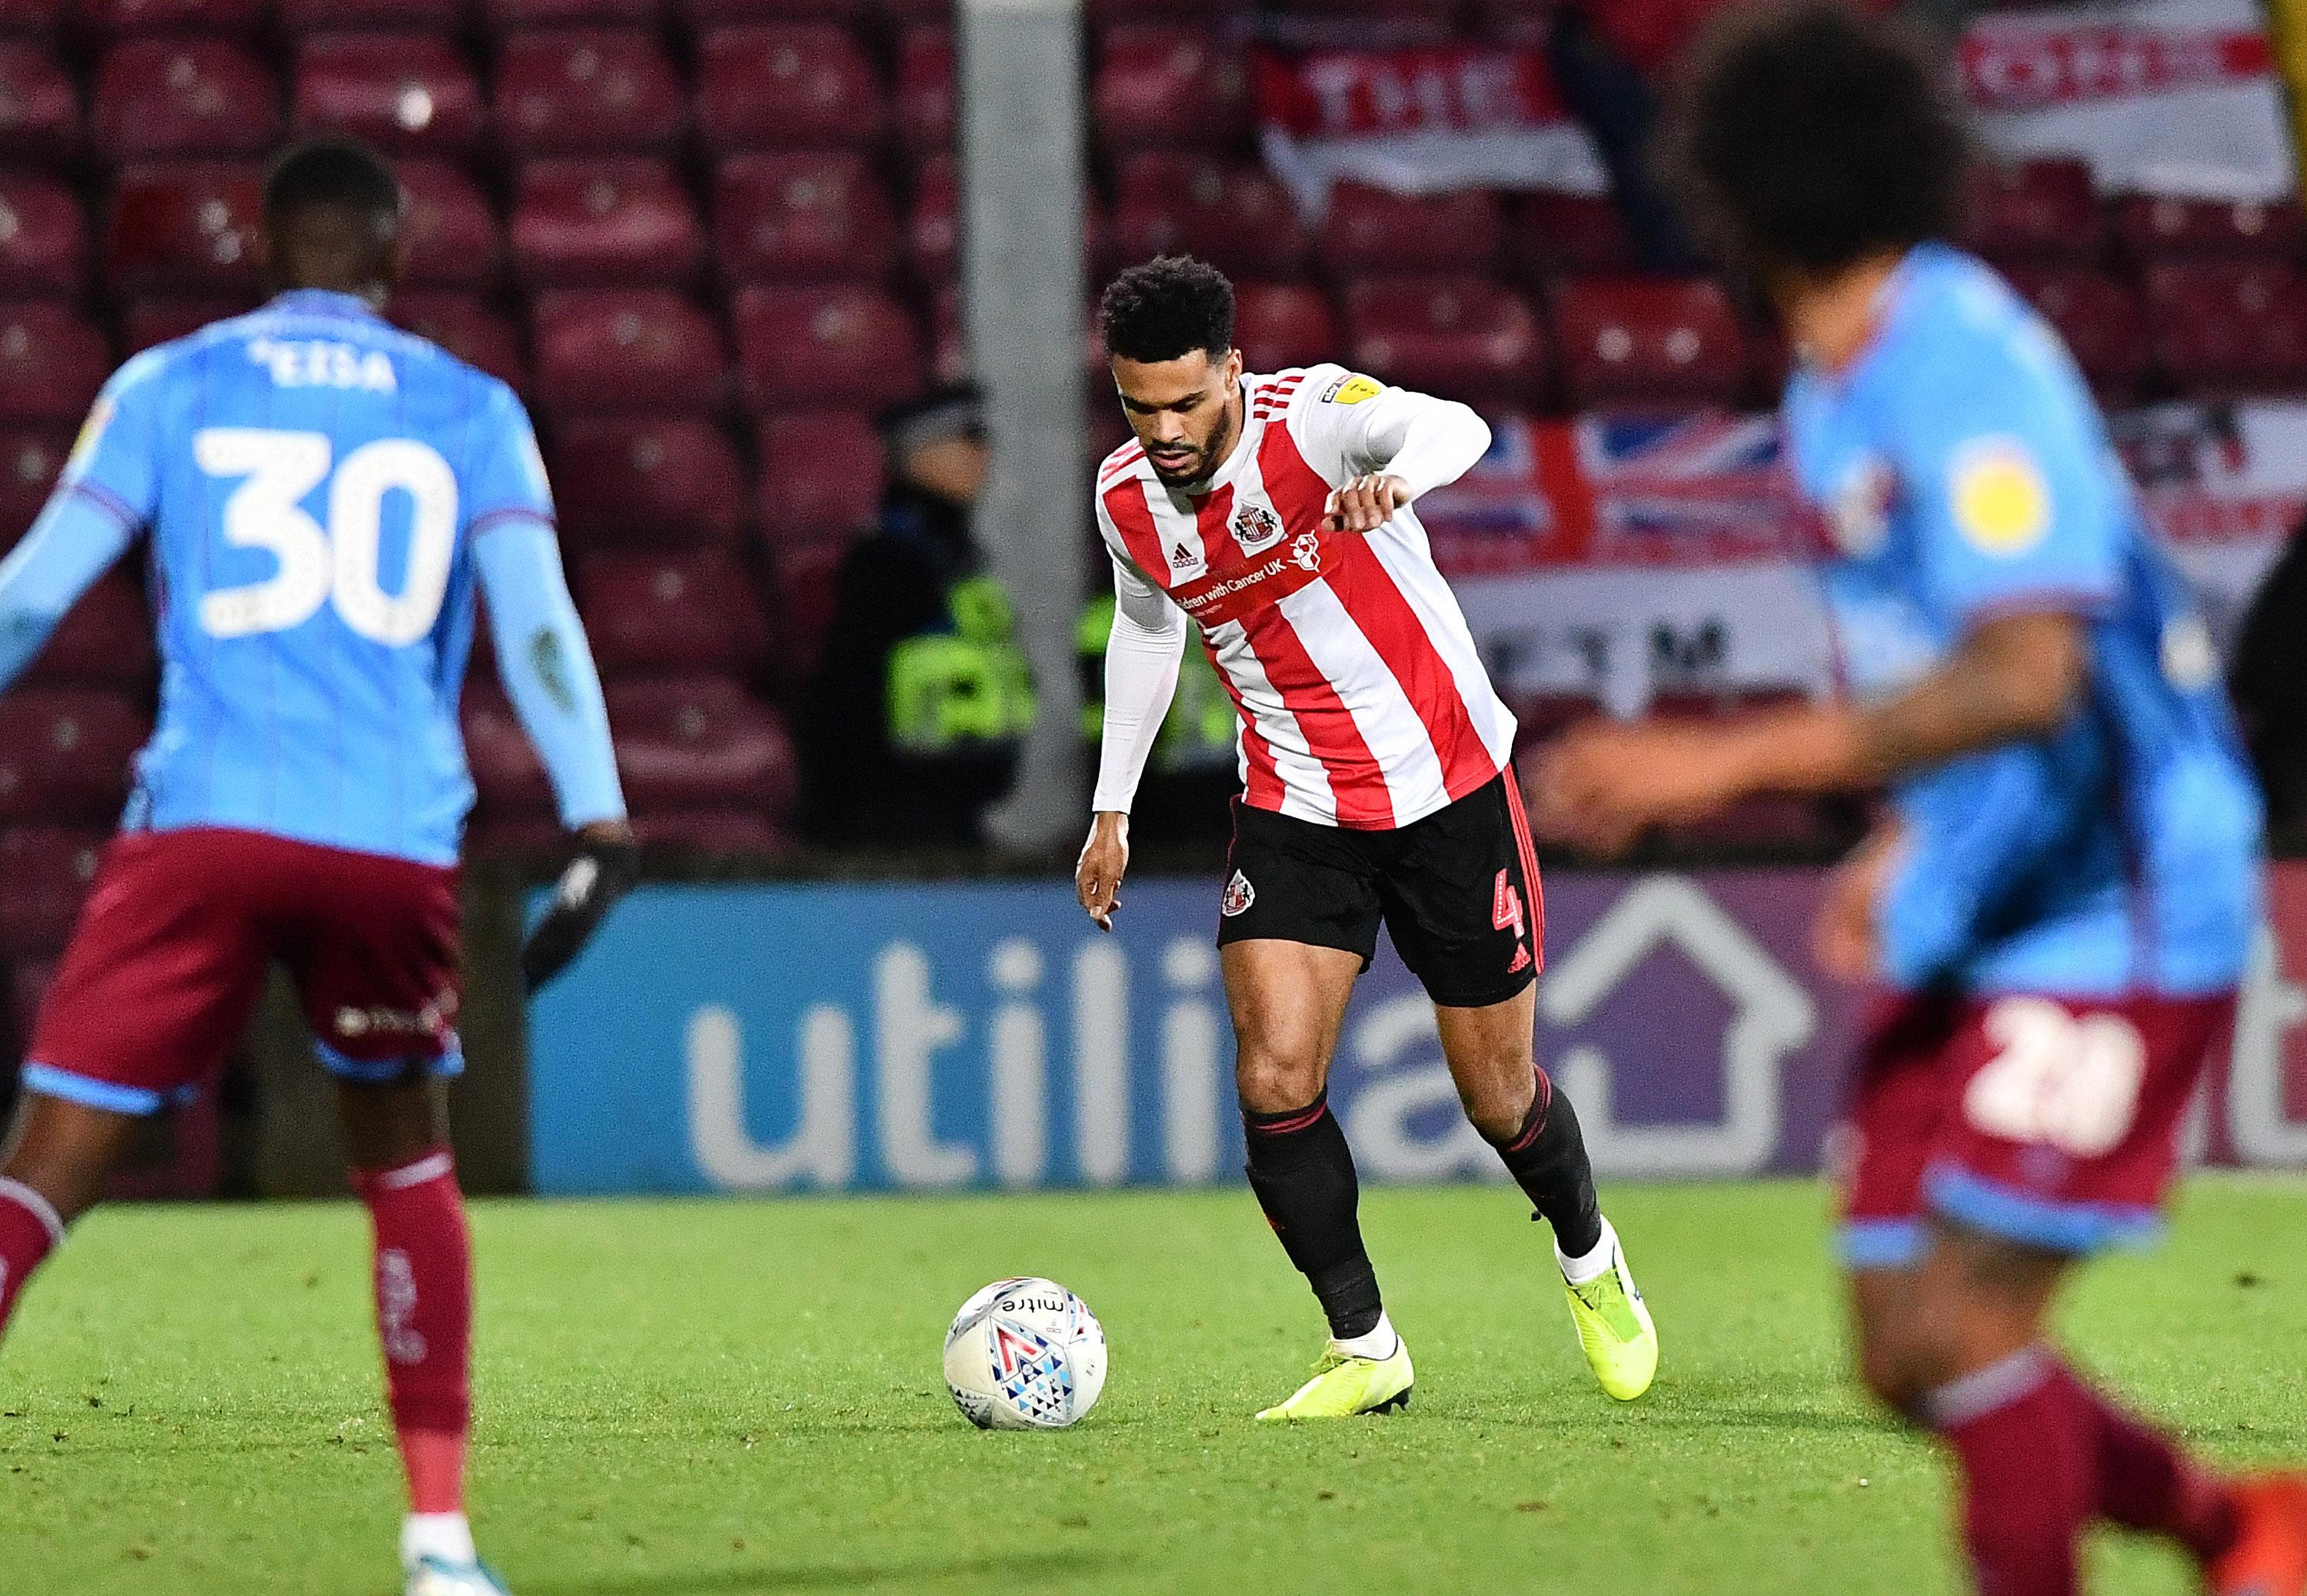 Sunderland hit by TRIPLE injury blow ahead of Gillingham FA Cup clash - Sunderland Echo